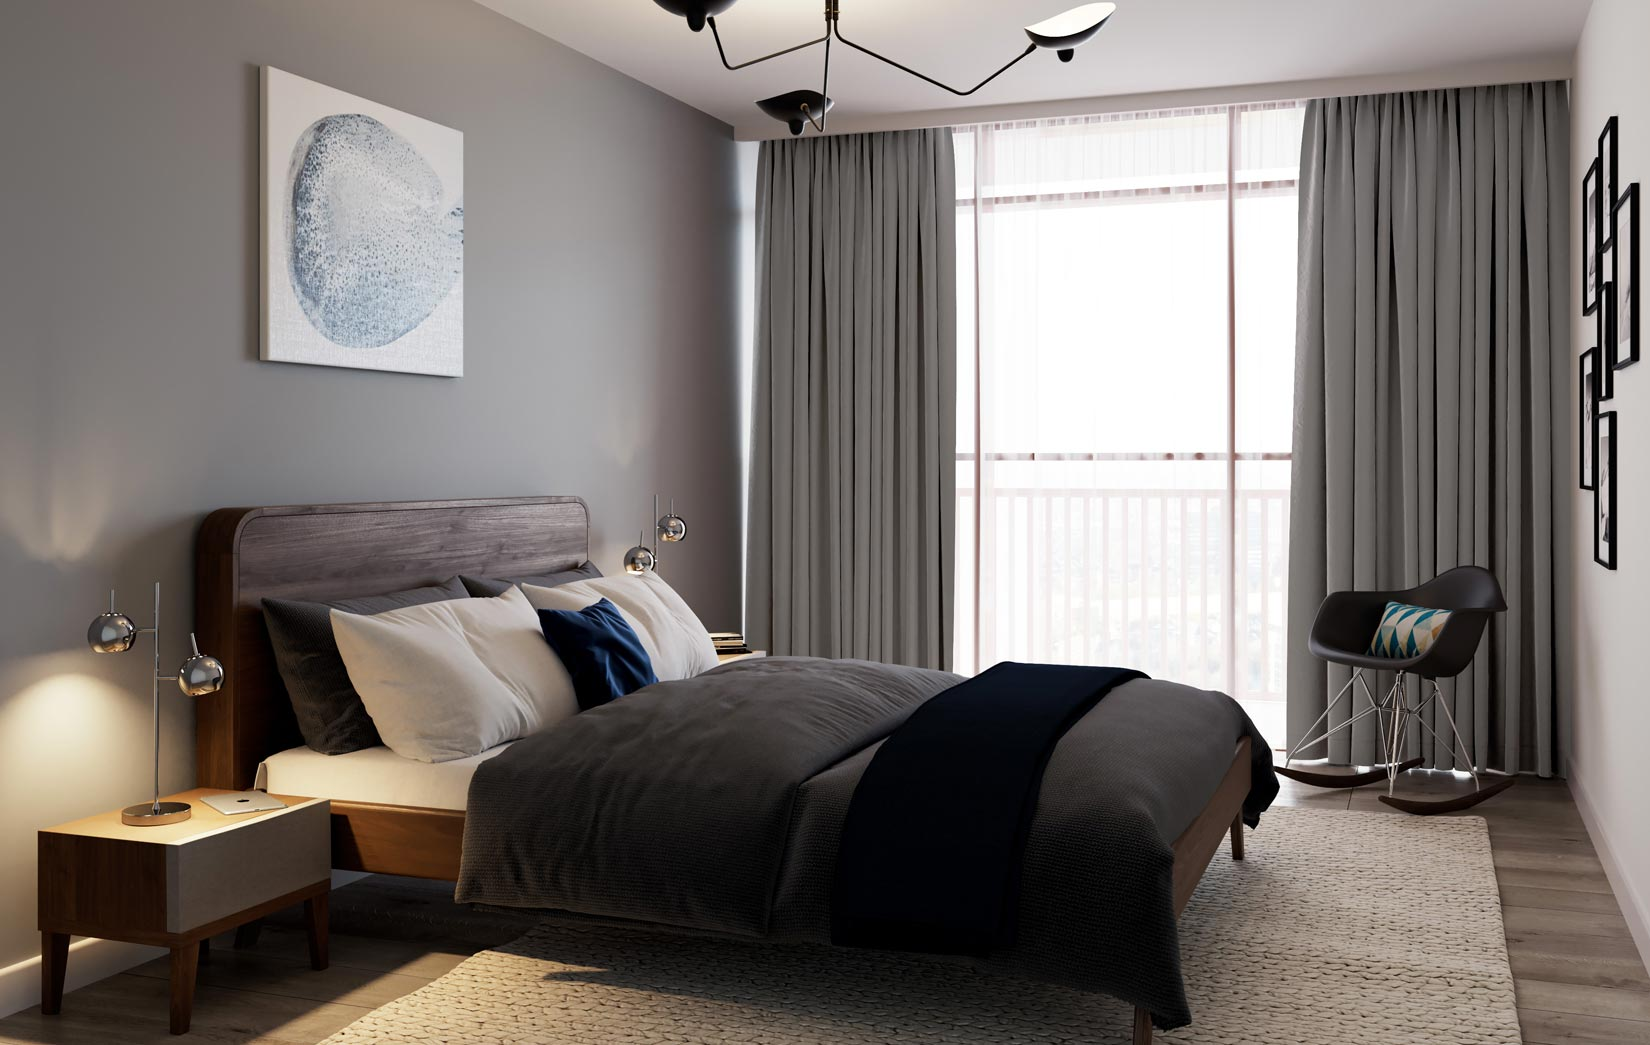 River Plaza, Derwent Street, Salford, 3D Visual of the bedroom